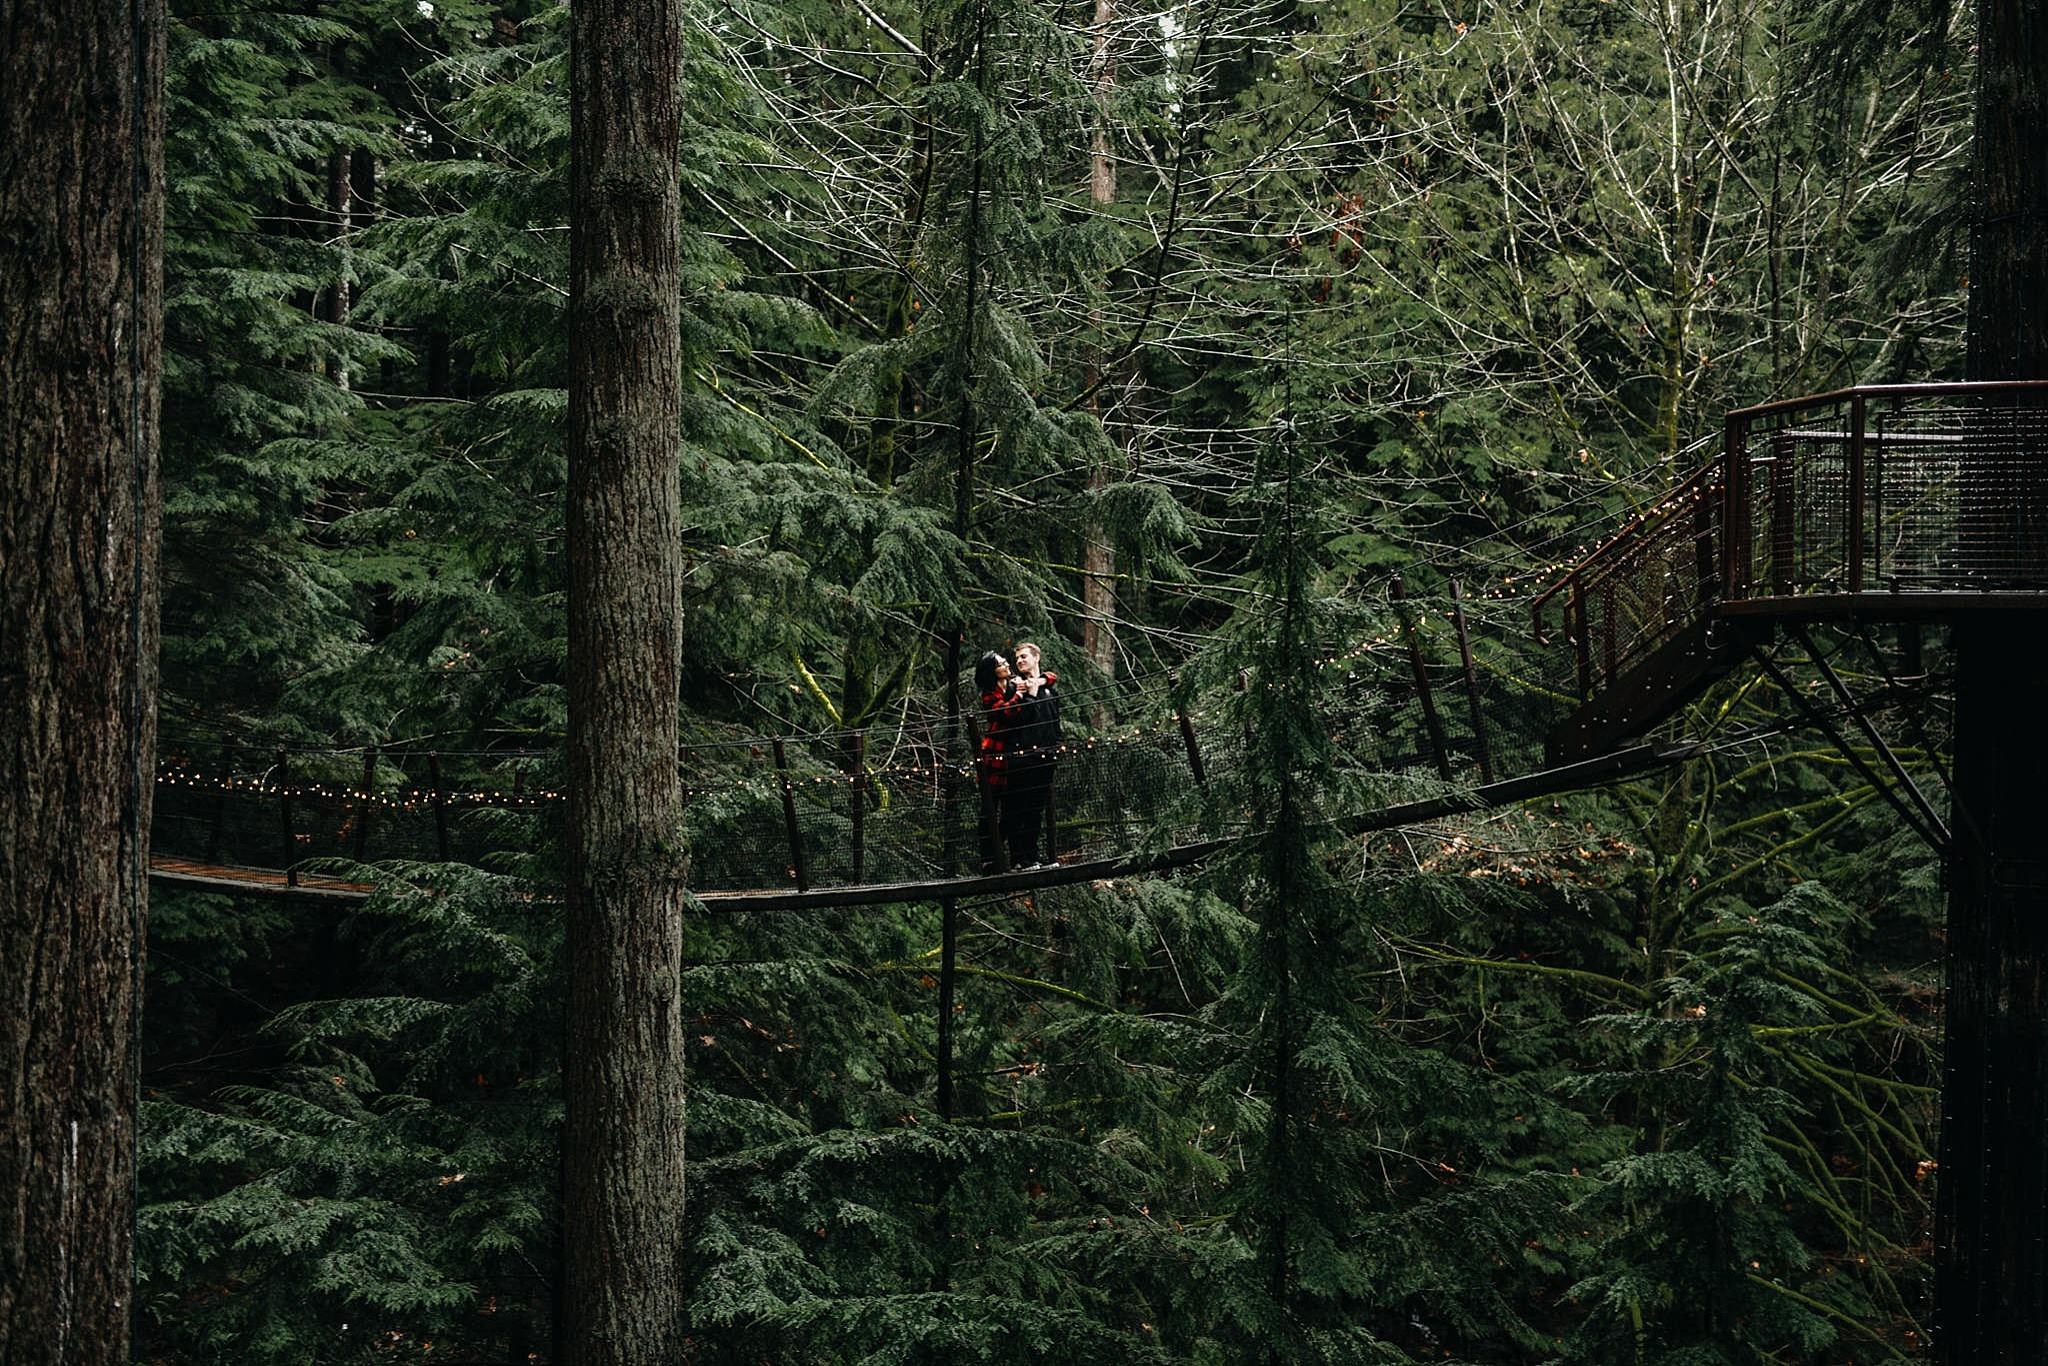 couple tiny people on bridge far away photo engagement capilano suspension bridge